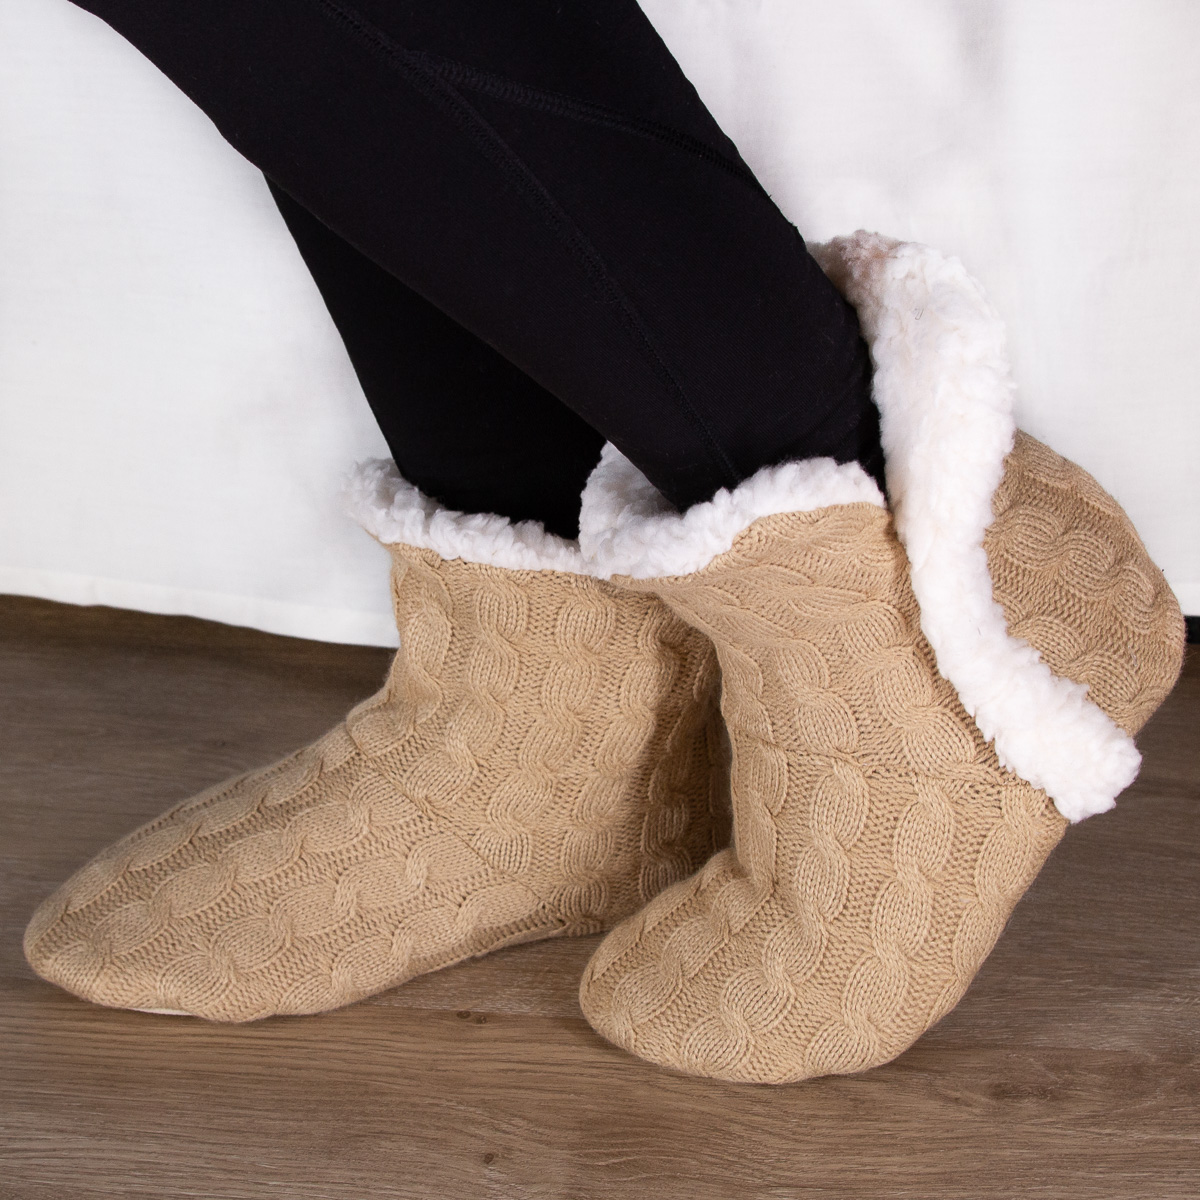 thumbnail 34 - Yelete Women's Cable Knit Slippers House Booties Soft Sherpa Lining Rubber Soles